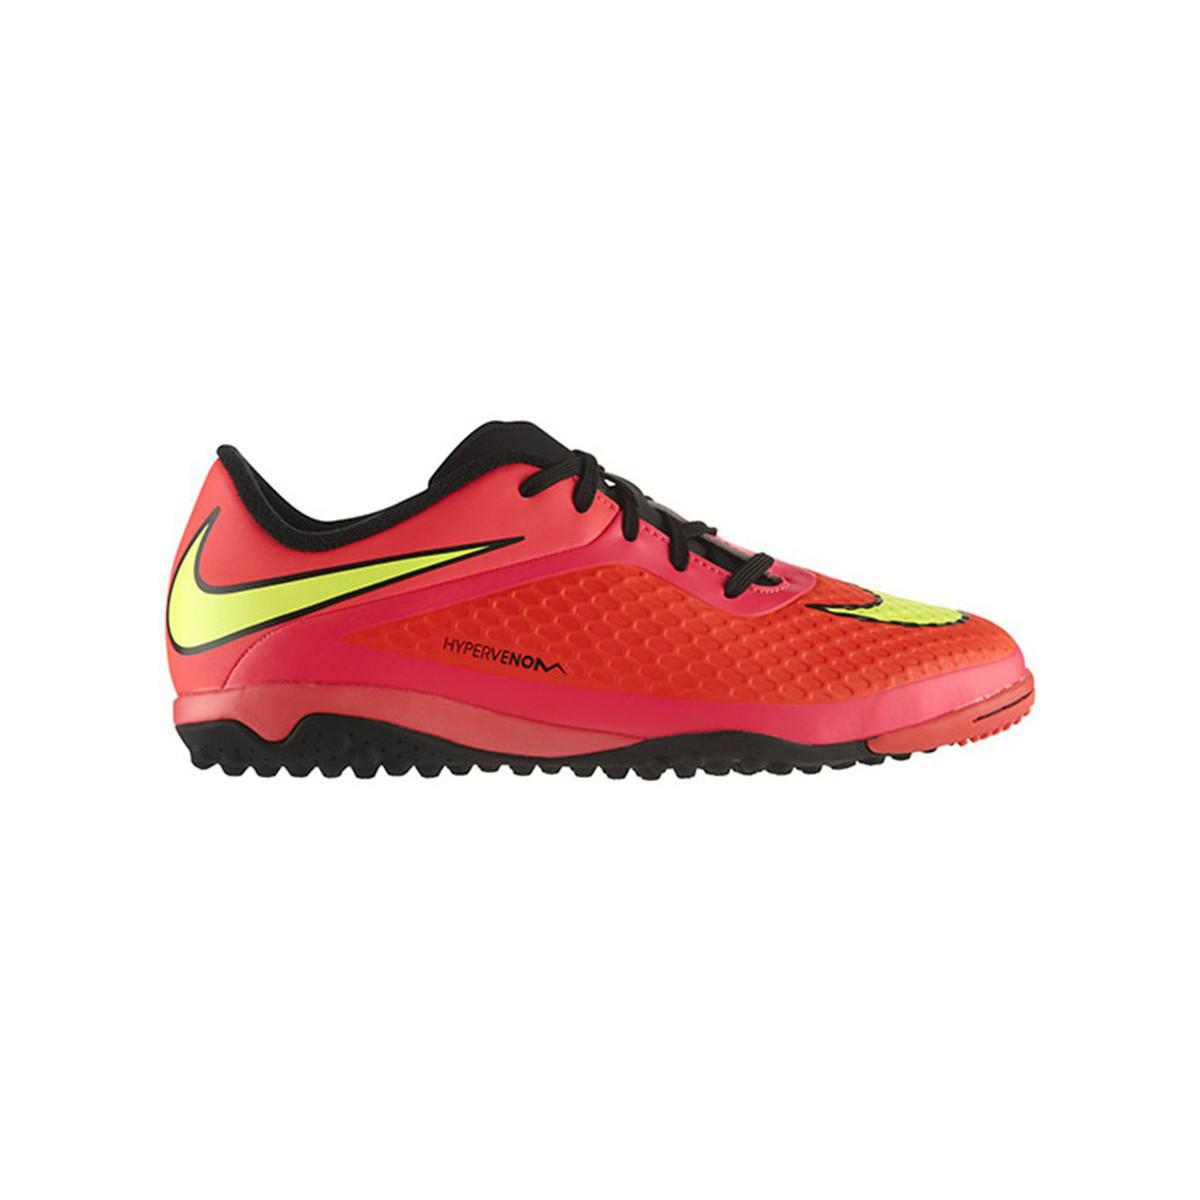 b5b4bebf85 Nike Hypervenom Phelon Tf Men's Football Boots In Pink in Pink for ...